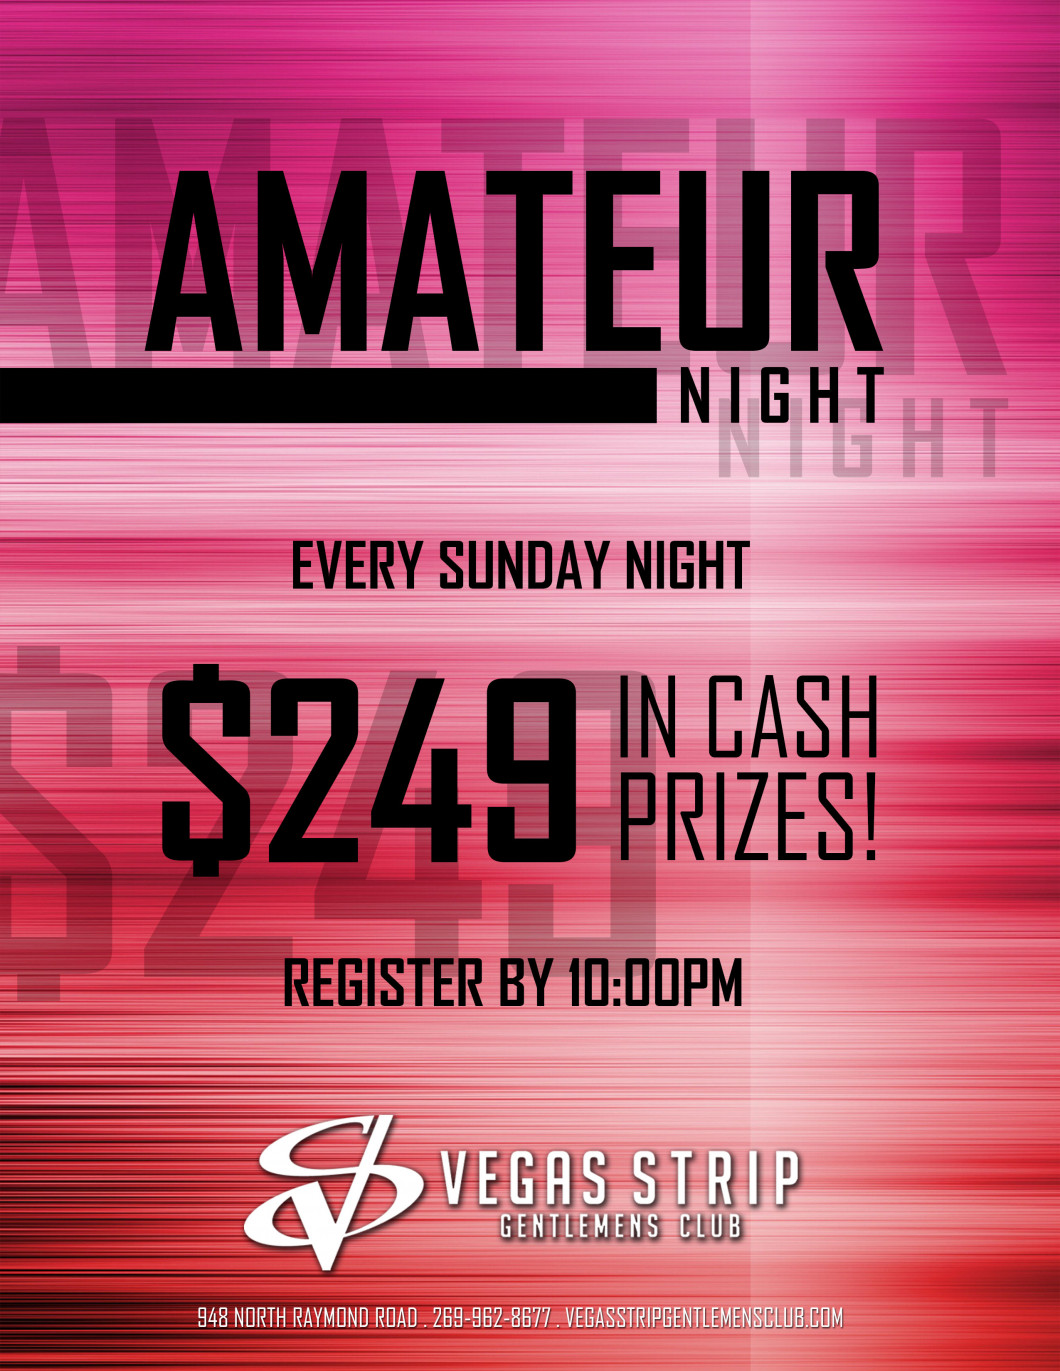 Amateur Night - Every Sunday starting at 10:00 PM